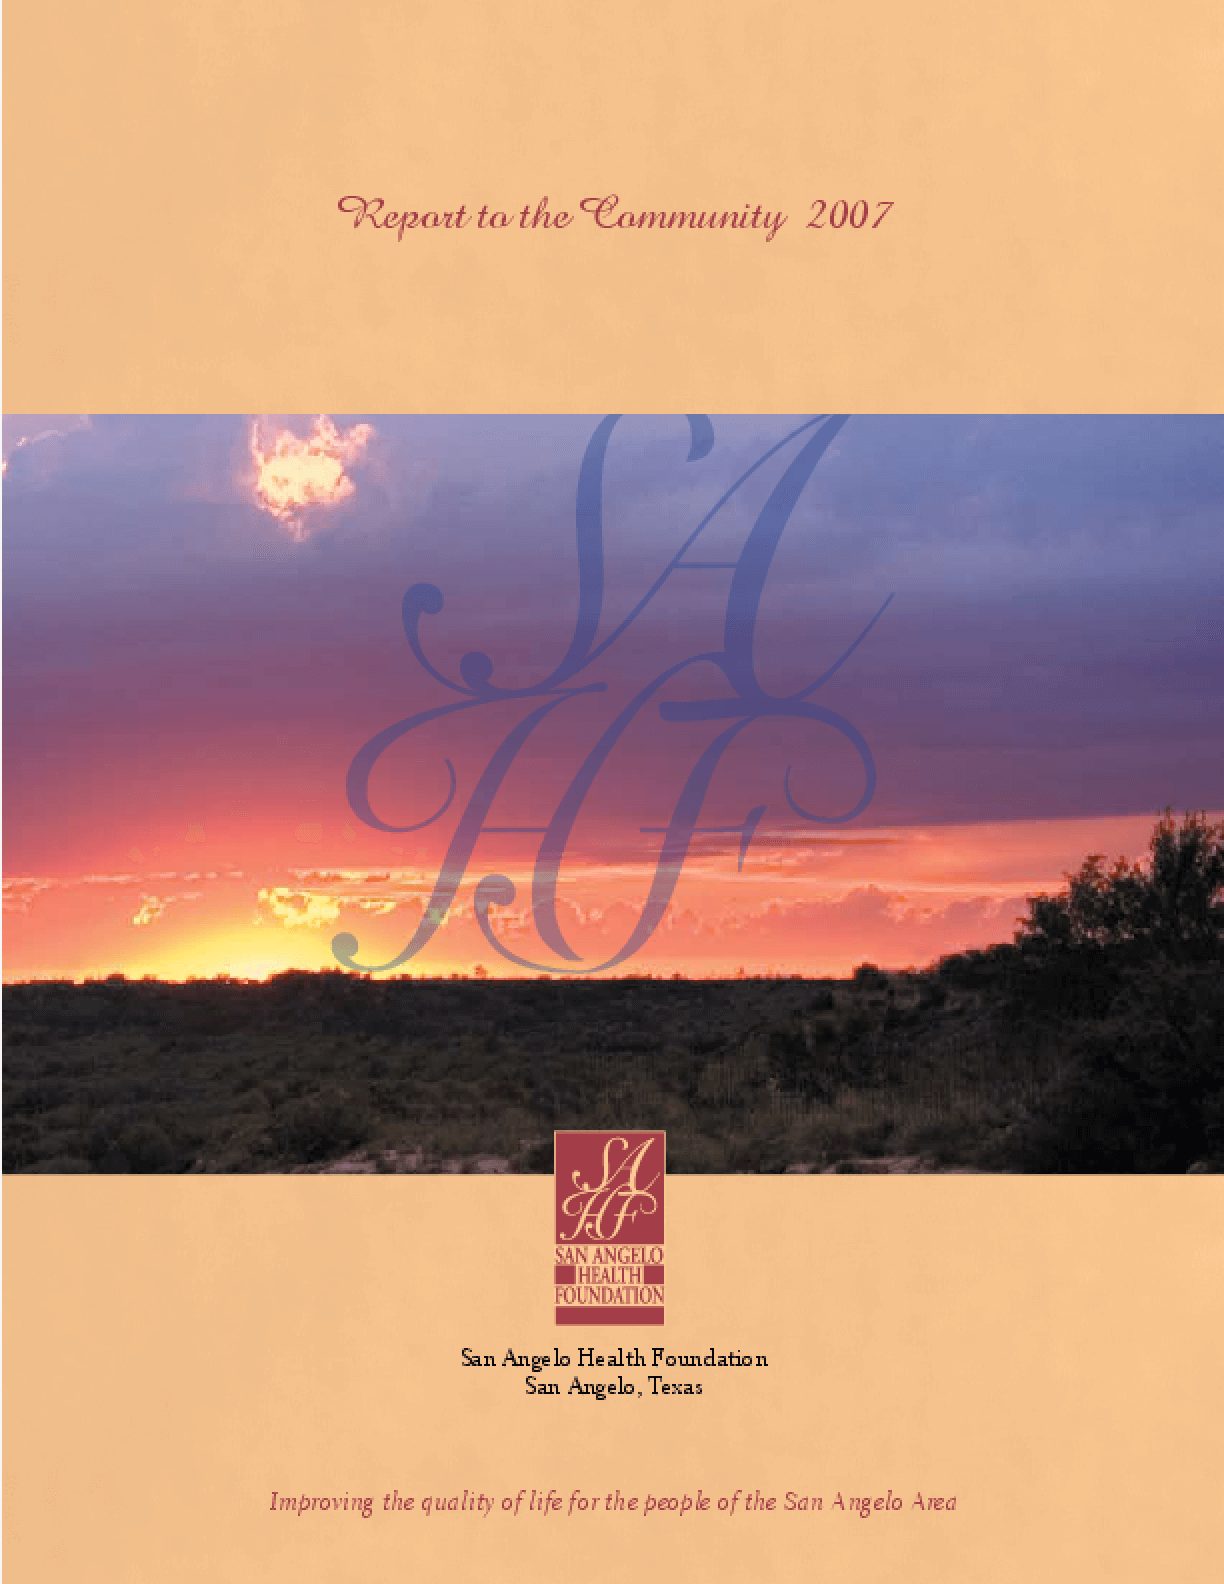 San Angelo Health Foundation - 2007 Annual Report